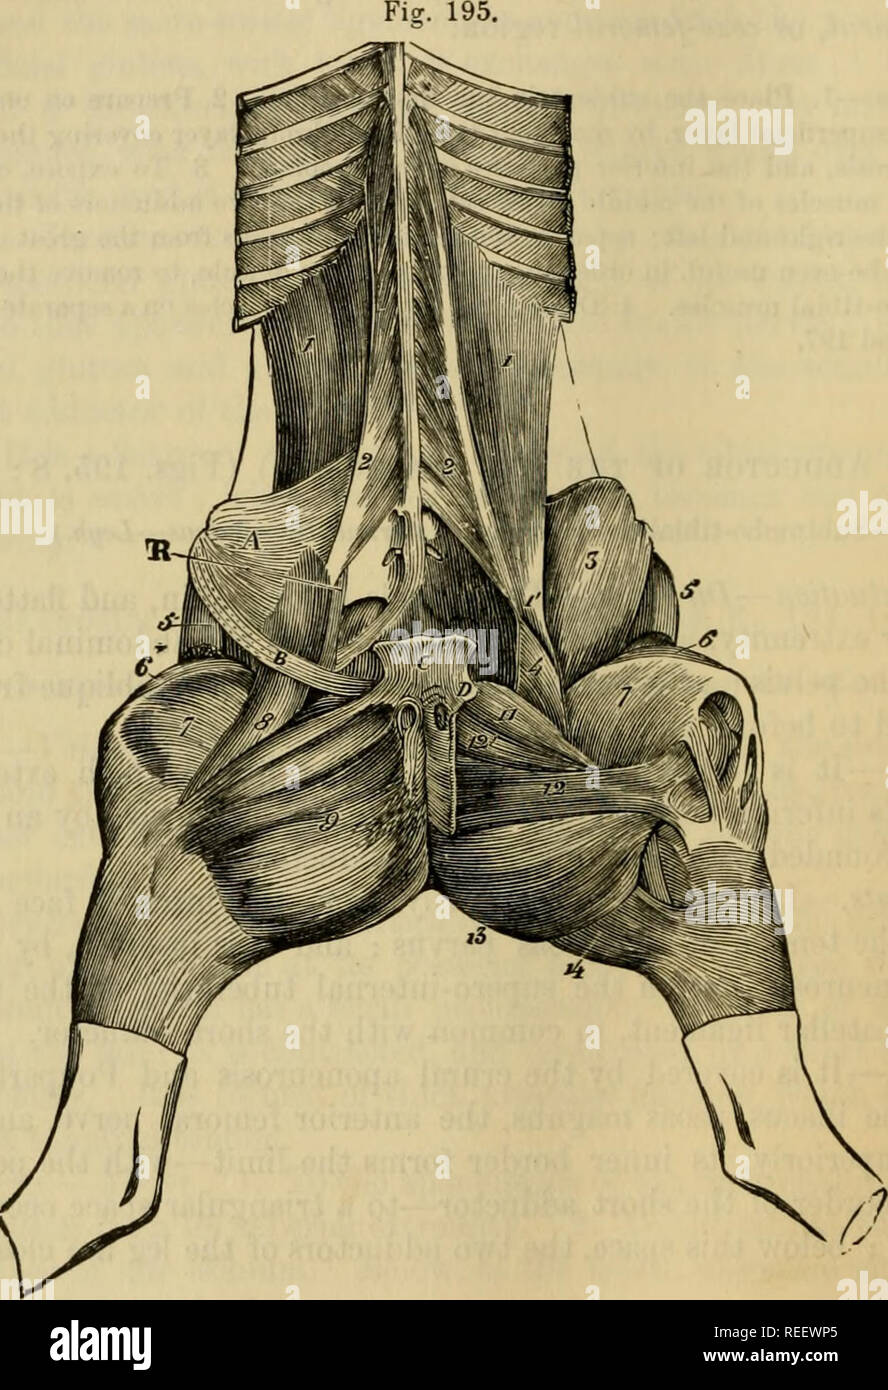 . The comparative anatomy of the domesticated animals. Veterinary anatomy. 354 THE MUSCLES. Attachments.—It originates, by the whole extent of its superior border, from the under surface of the ischio-pubic symphysis, and is united to the muscle of the opposite side—origin. Its terminal aponeurosis, united to that of the sar- torious, is inserted on the internal patellar ligament and the internal face of the tibia—movable insertion; posteriorly, it is united to the aponeurosis of the semi- tendinosus, and with it forms the tibial aponeurosis enveloping the tibial muscles. Relations.—Its superf - Stock Image